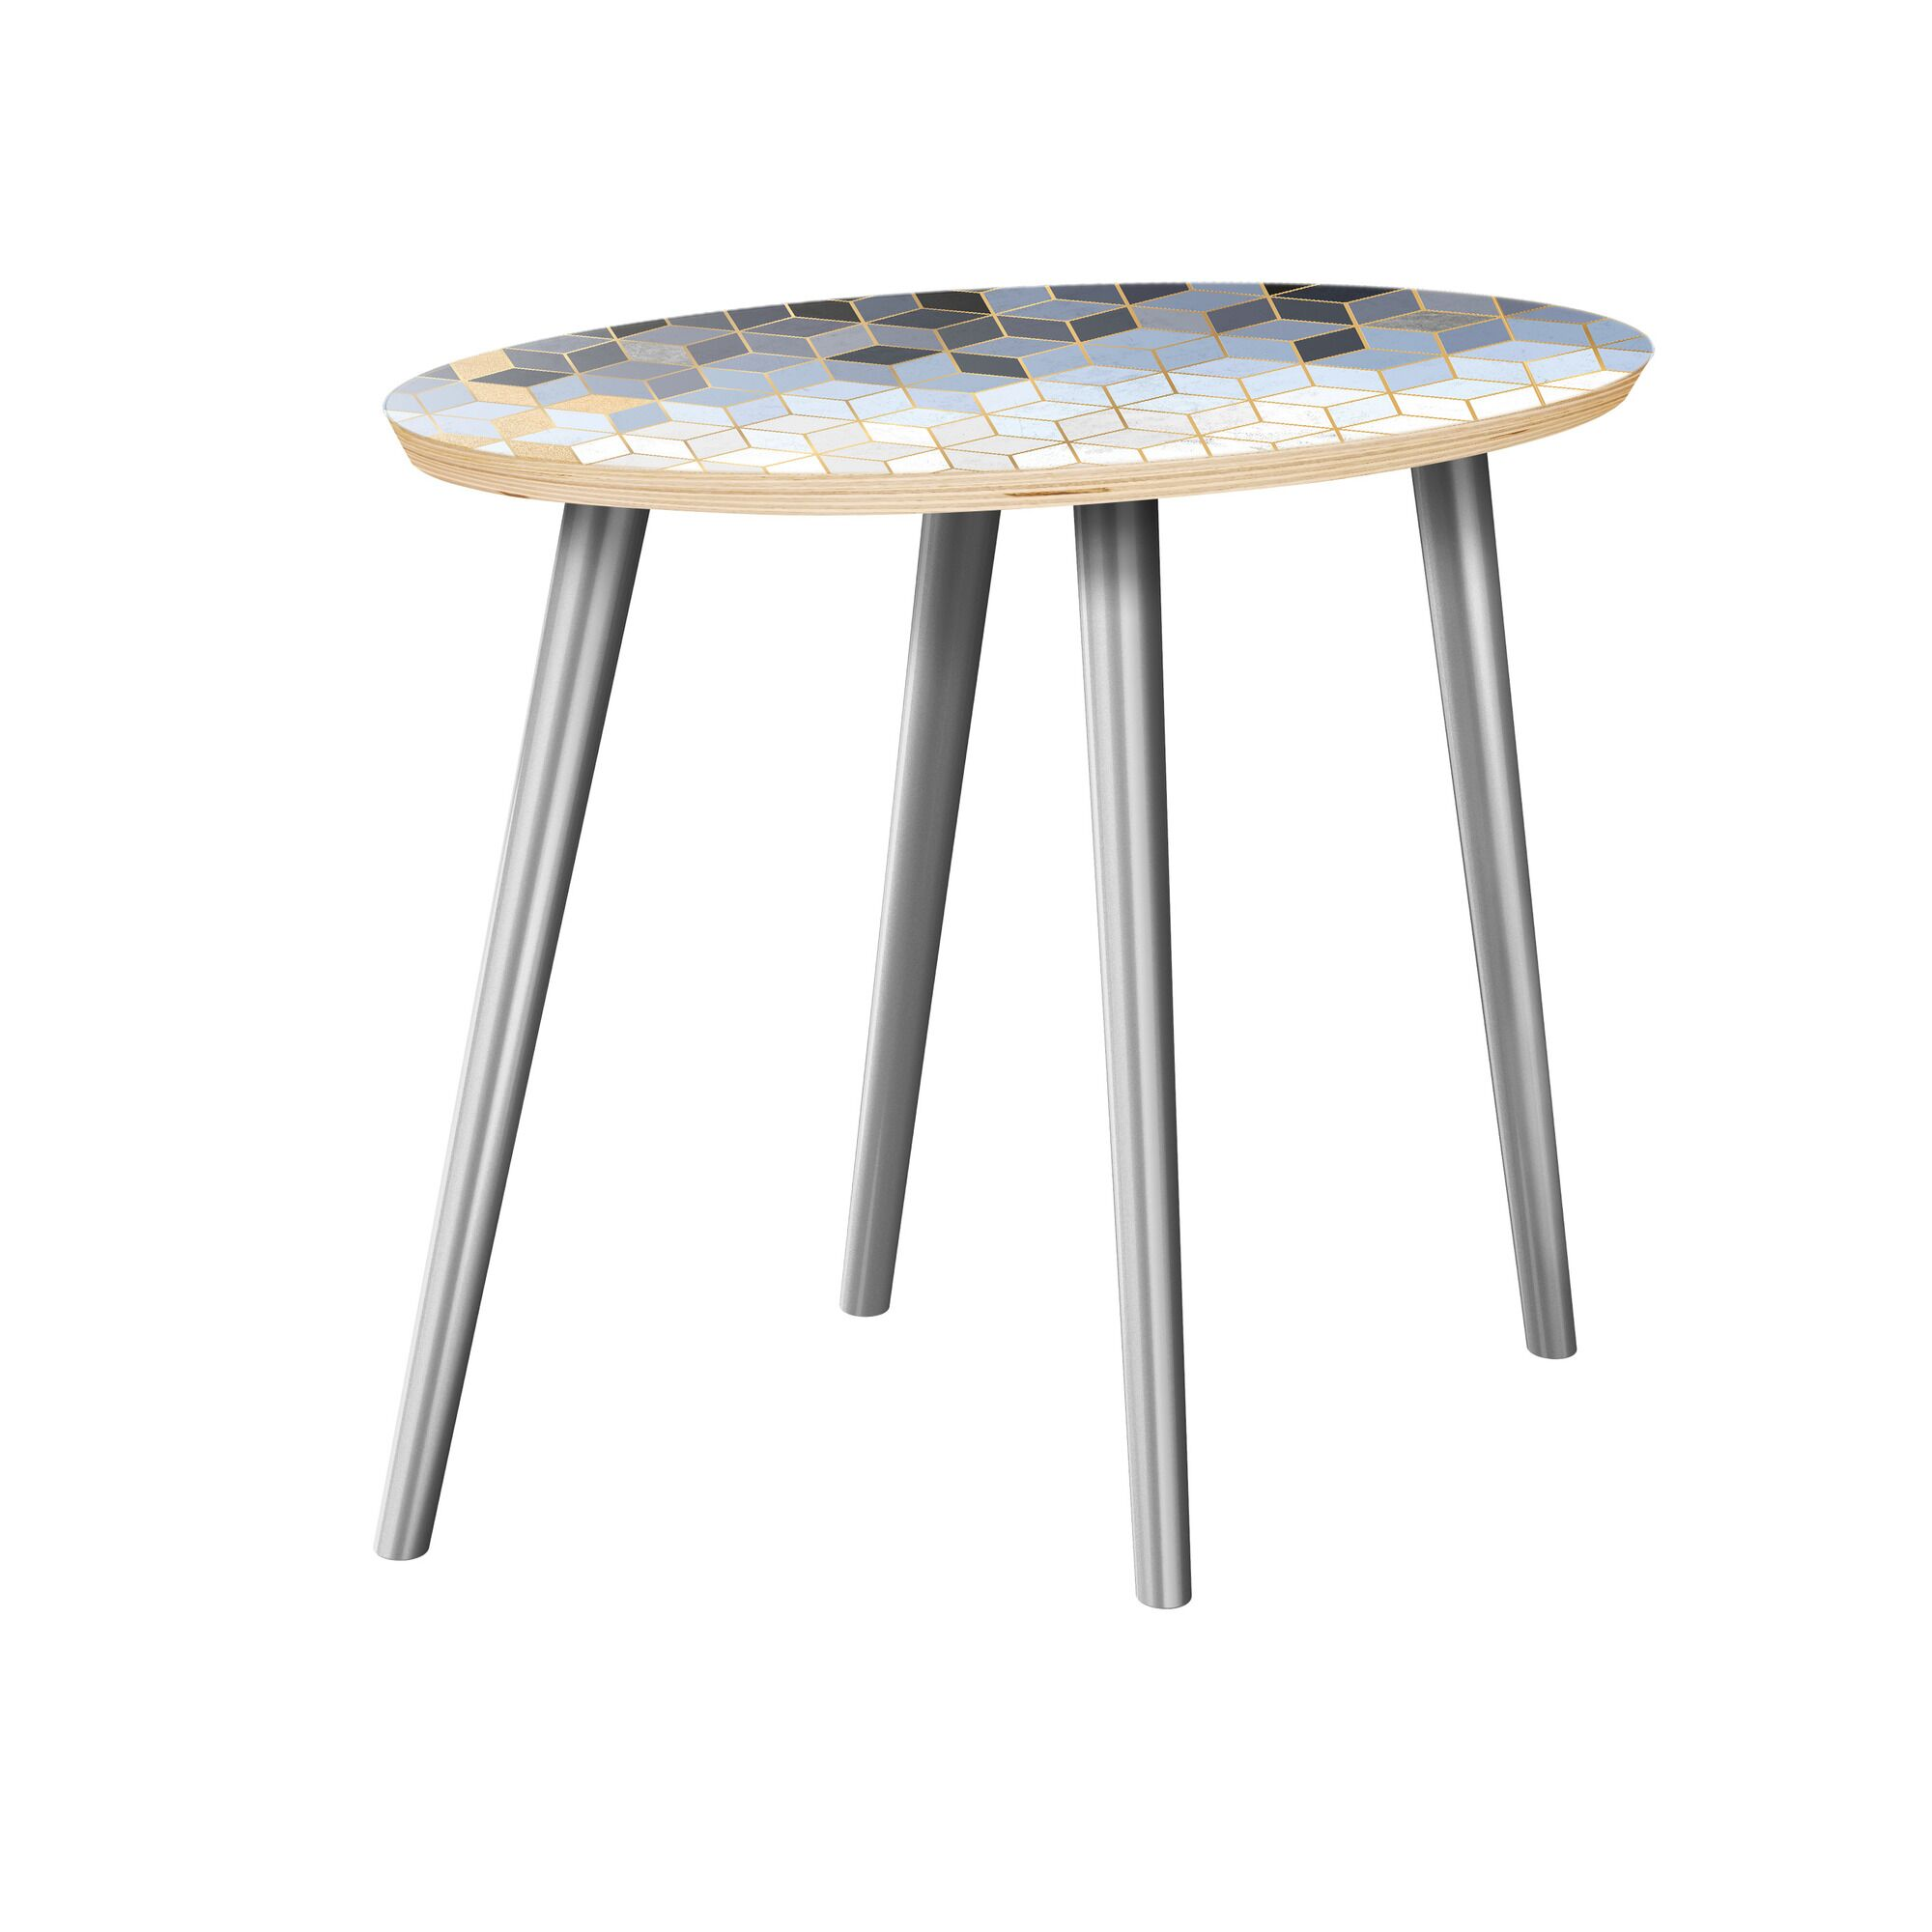 Guth End Table Table Top Color: Natural, Table Base Color: Chrome